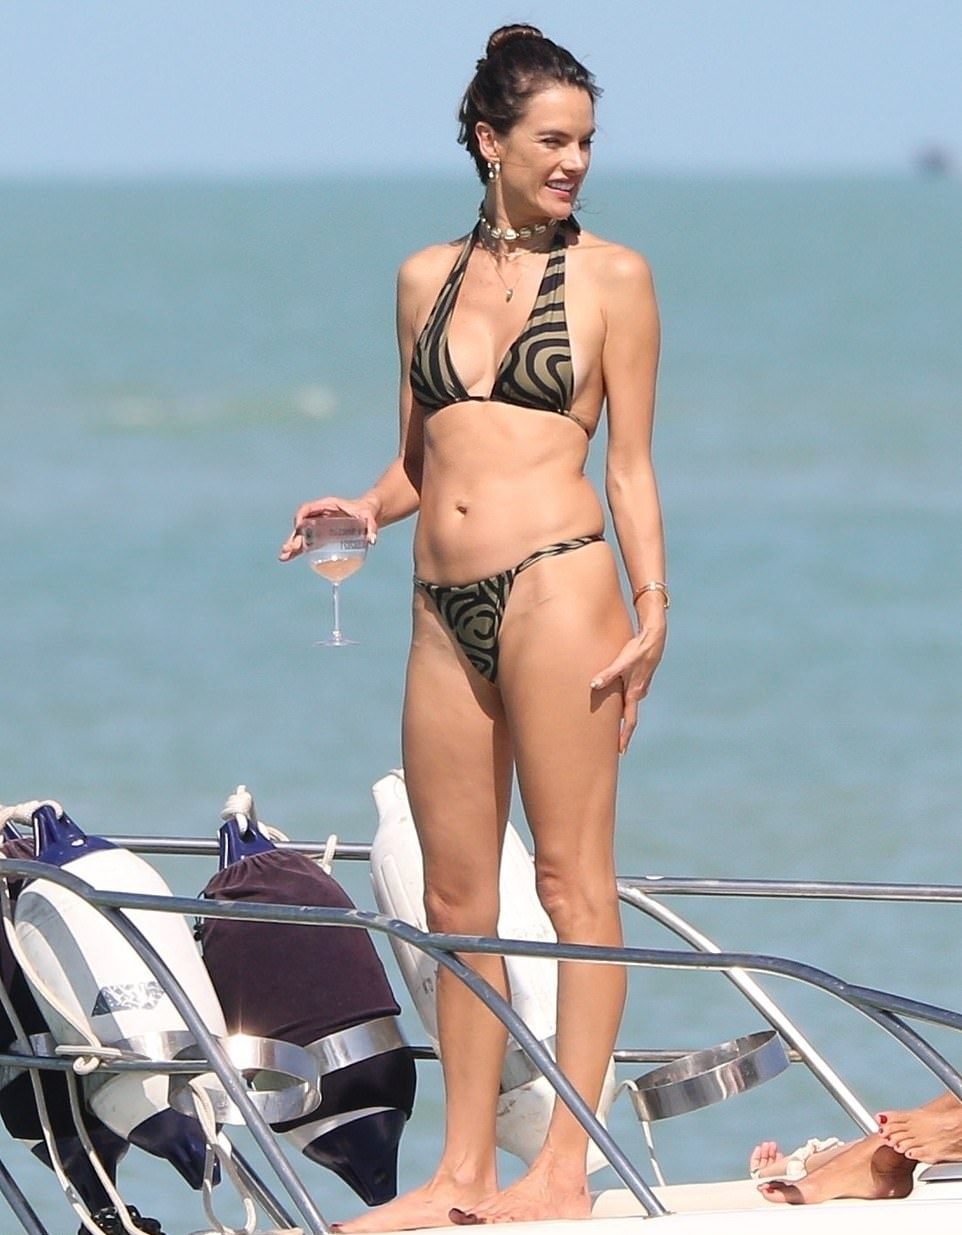 Alessandra Ambrosio rocking a skimpy bi color bikini top with a halter neck and straps tied at the shoulder